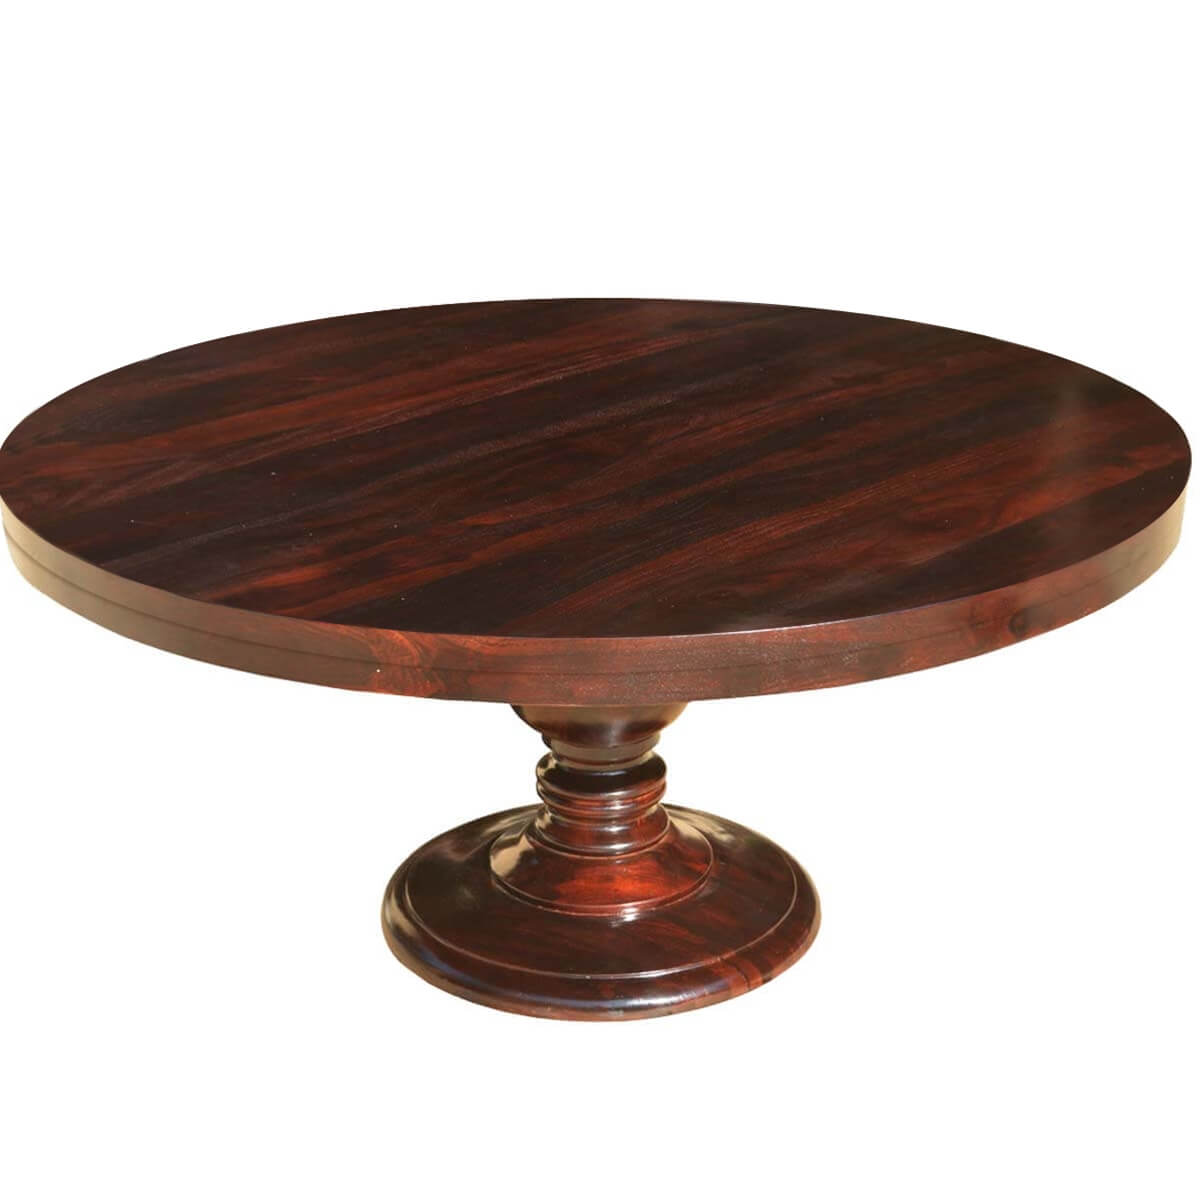 "Round Solid Wood Dining Table: Colonial American Solid Wood Pedestal 72"" Round Dining Table"